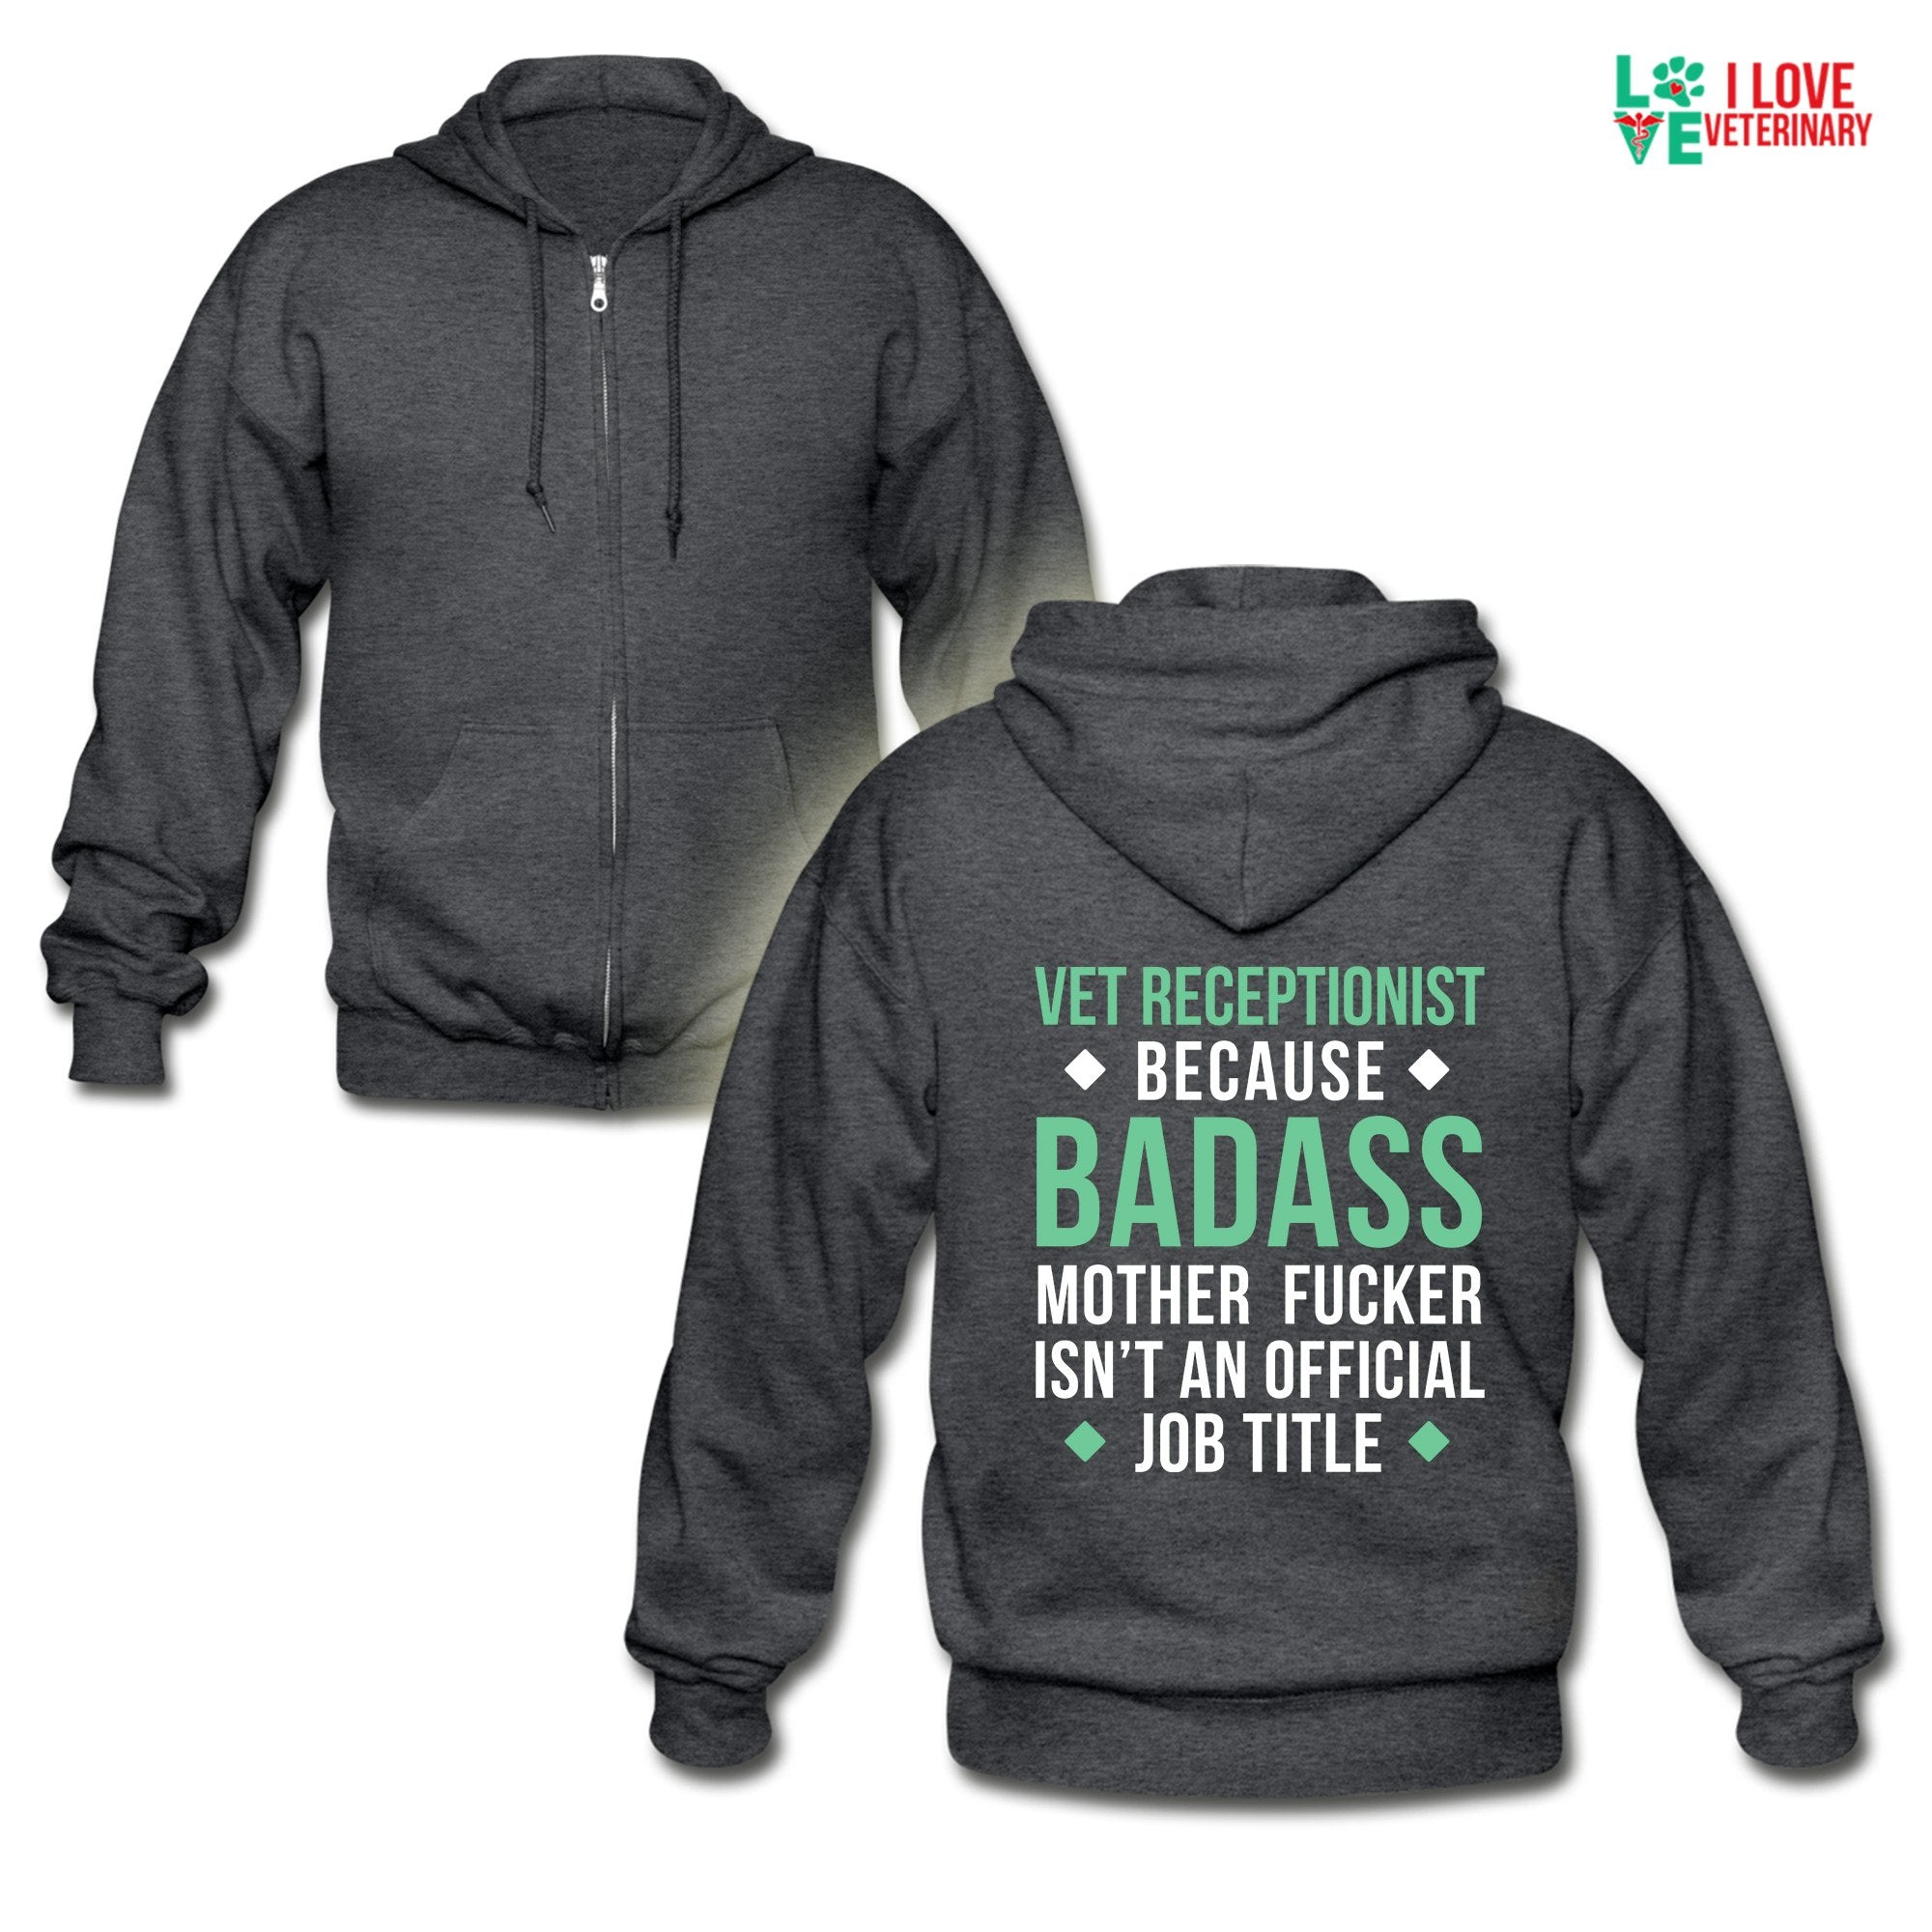 Vet Receptionist because badass mother fucker isn't an official job title Unisex Zip Hoodie-Gildan Heavy Blend Adult Zip Hoodie-I love Veterinary